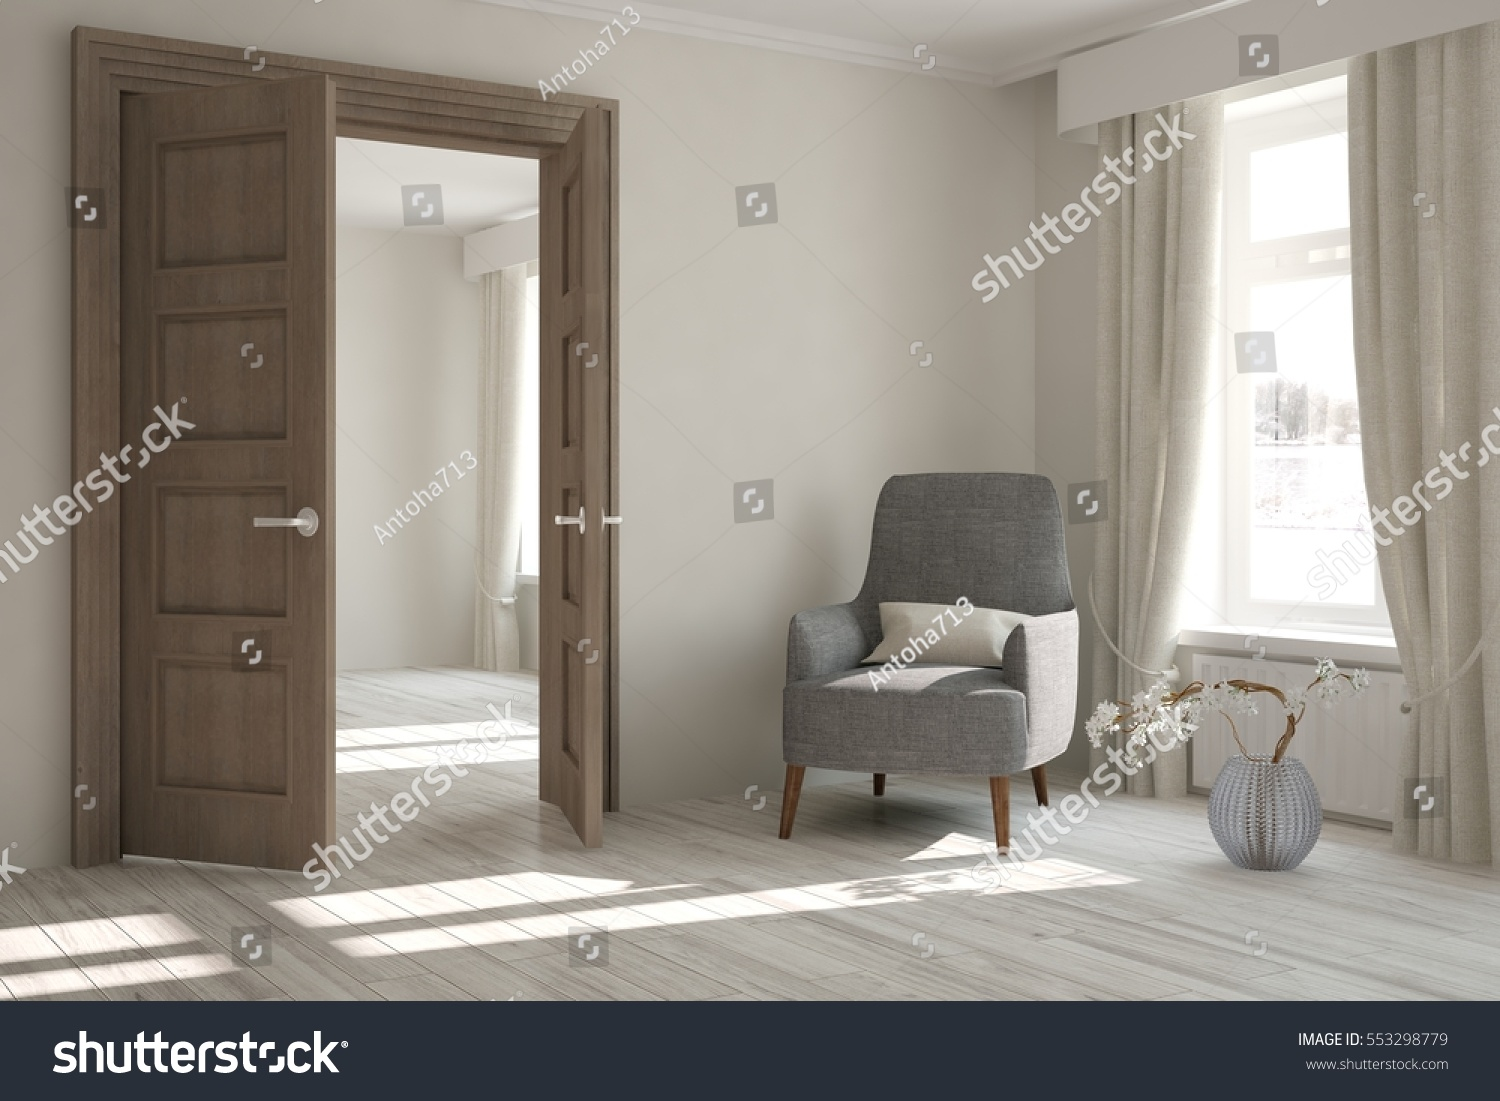 door for anastasia.jpg